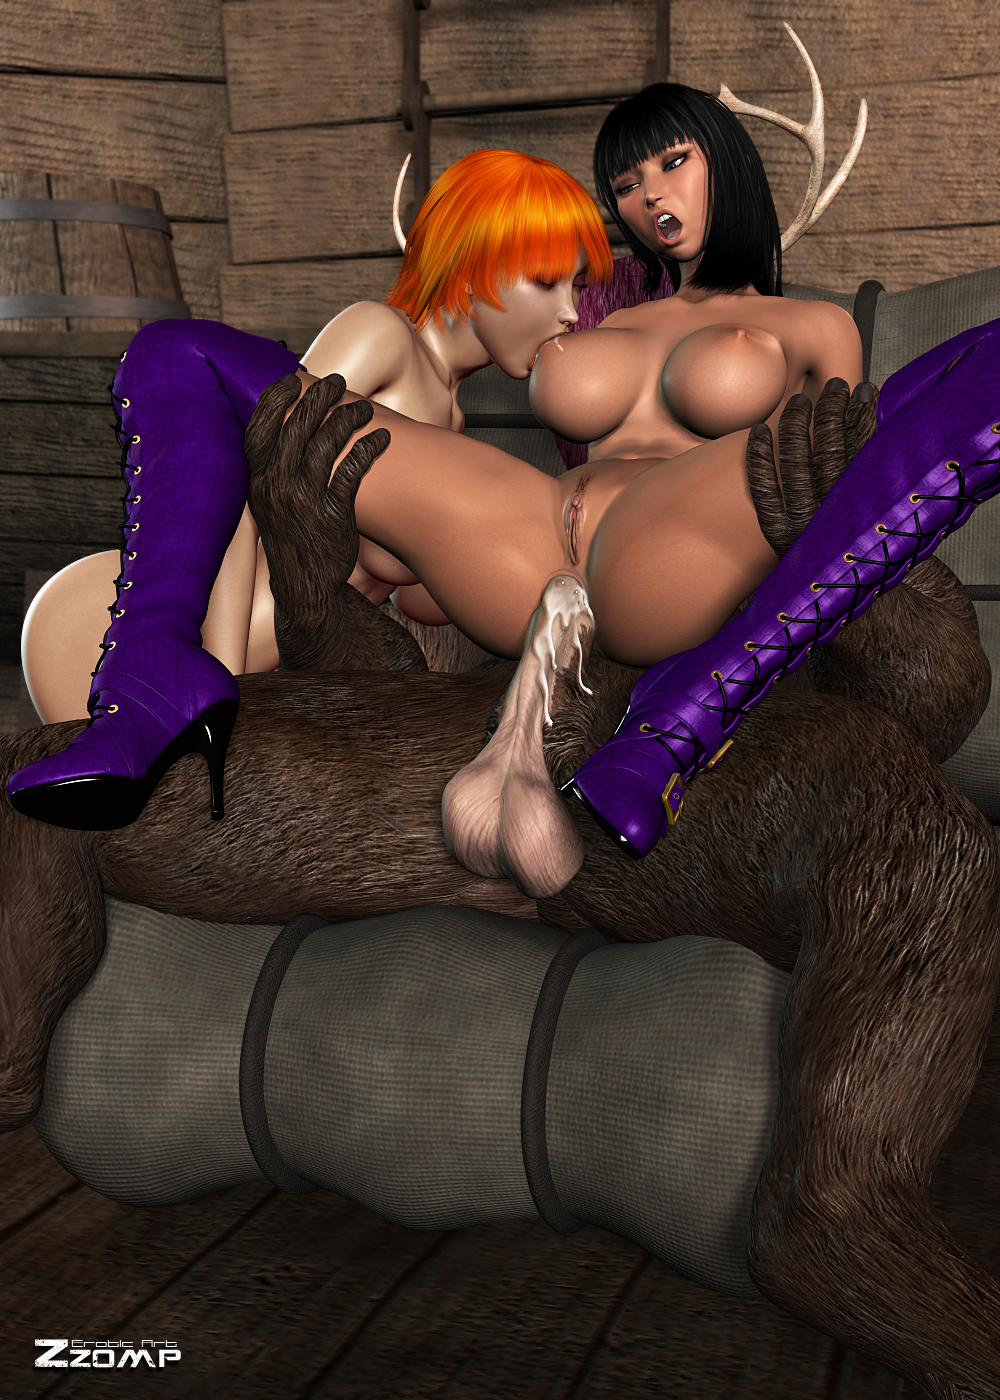 Monster 3d pics xxx torrentz hardcore galleries